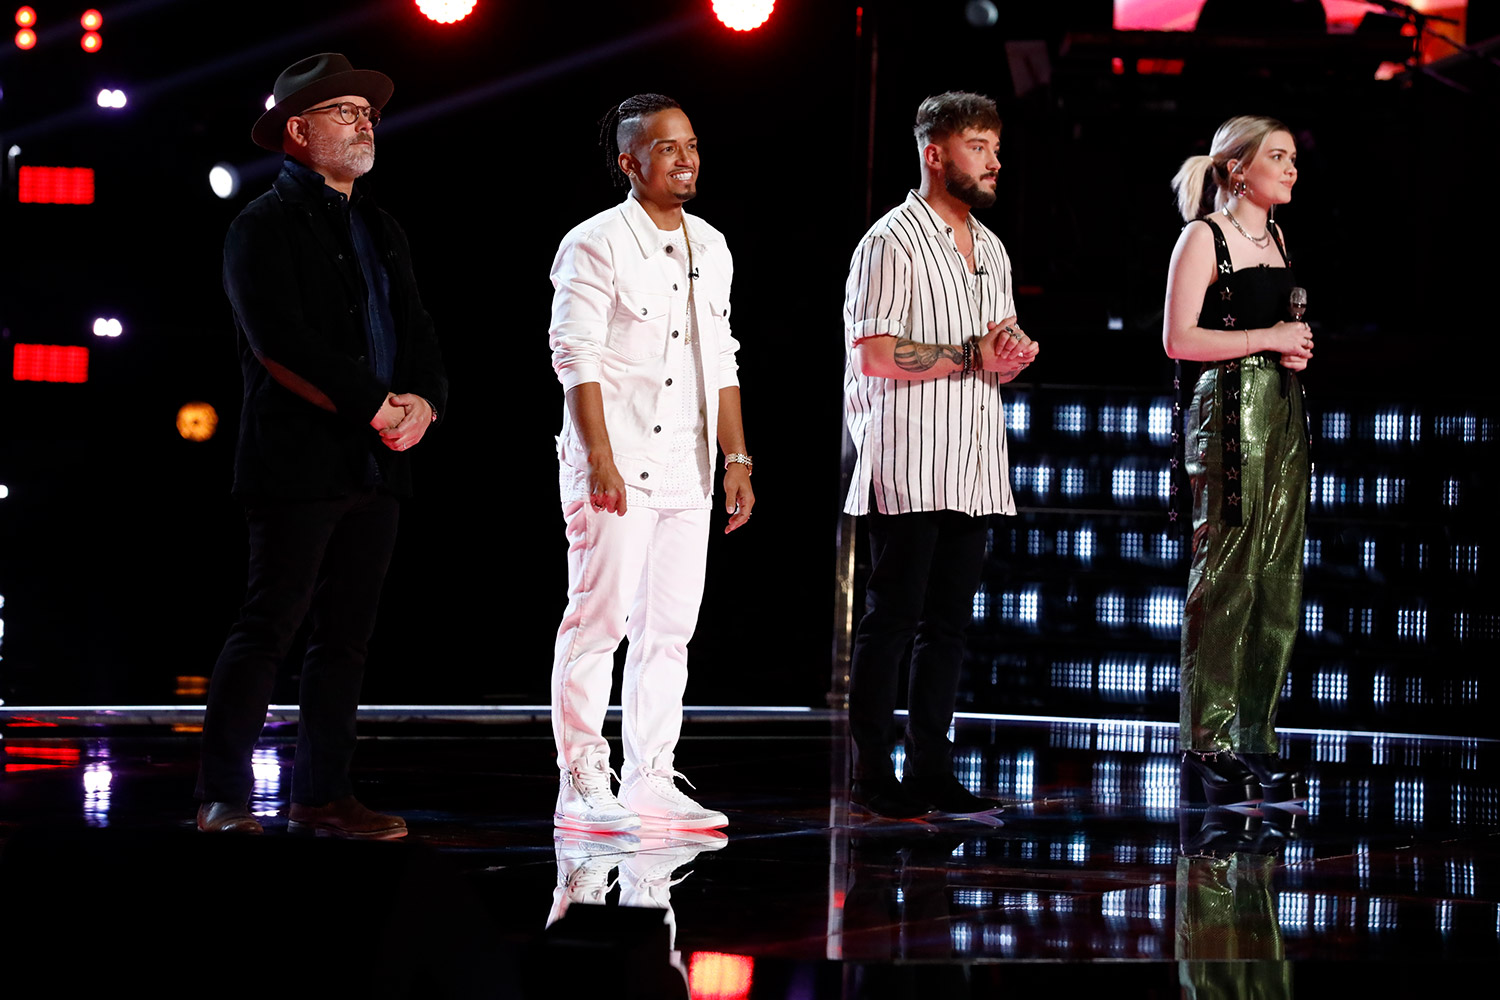 Pete Mroz, Jose Figueroa Jr., Corey Ward, and Ryleigh Modig on 'The Voice'